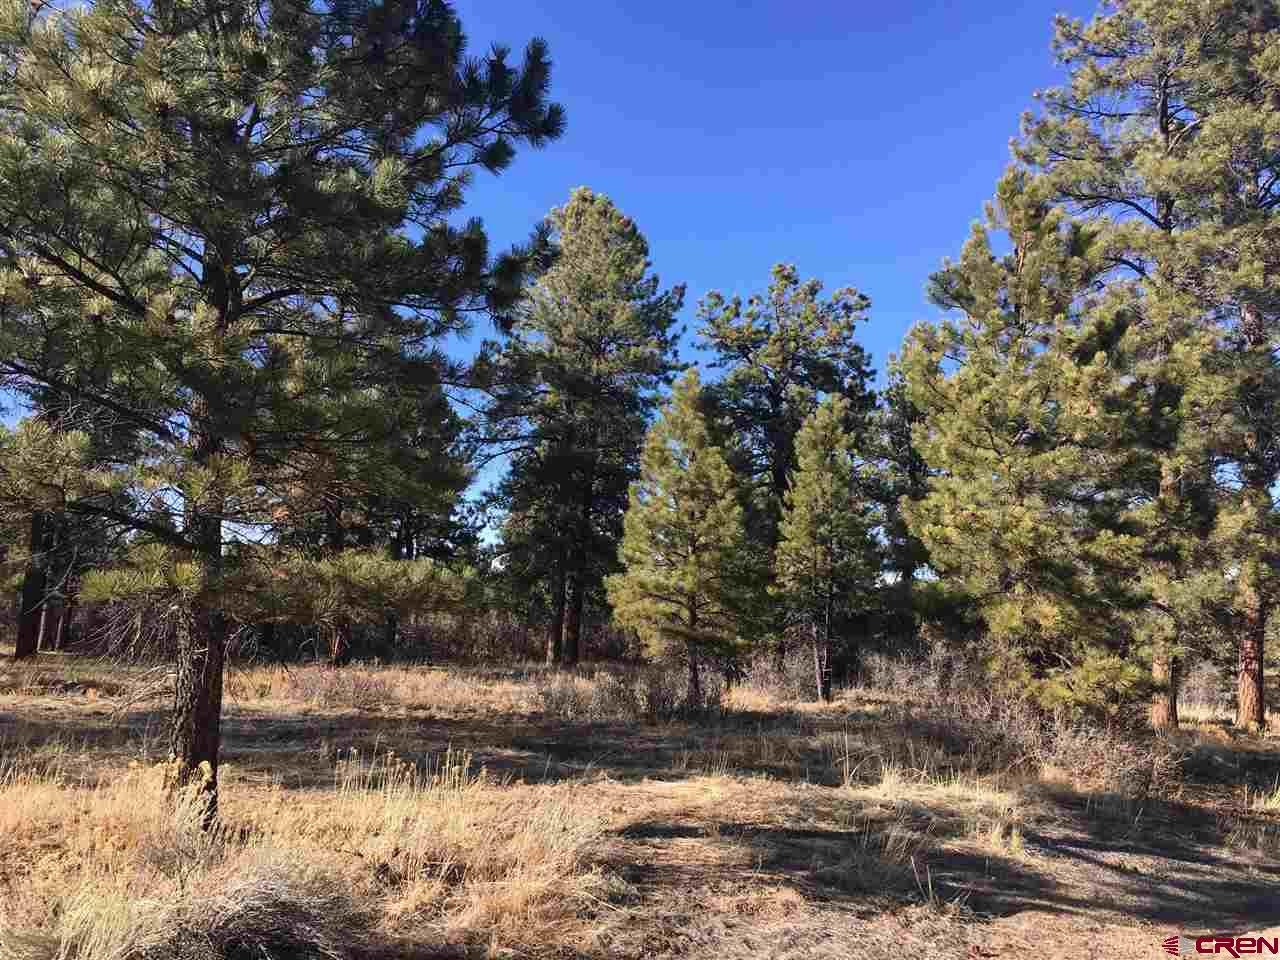 "What a special spot! Majestic Ponderosas, a paved road, easy access and a little over 4 level acres nestled along a beautiful park-like open space.  Utilites are all there including natural gas and a fiber optic high speed internet cable the installation of which is nearing completion. Fisher Canyon South is conveniently located close to the Divide Ranch Golf Course and all that the Town of Ridgway has to offer.  Hike or mountain bike the beautiful trails, fish or boat in the nearby reservoir, ski Telluride or enjoy its many summer concerts, visit the quaint mining town of Ouray and enjoy its shops and restaurants. OR, you can stay at home enjoying your first cup of coffee on the deck in the morning or a glass of wine in the evening listening to the sound of the breeze in the Ponderosas, the birds busy with their day, looking at the incredible ""Colorado Blue"" sky and enjoying life in this exquisitely beautiful corner of the world."